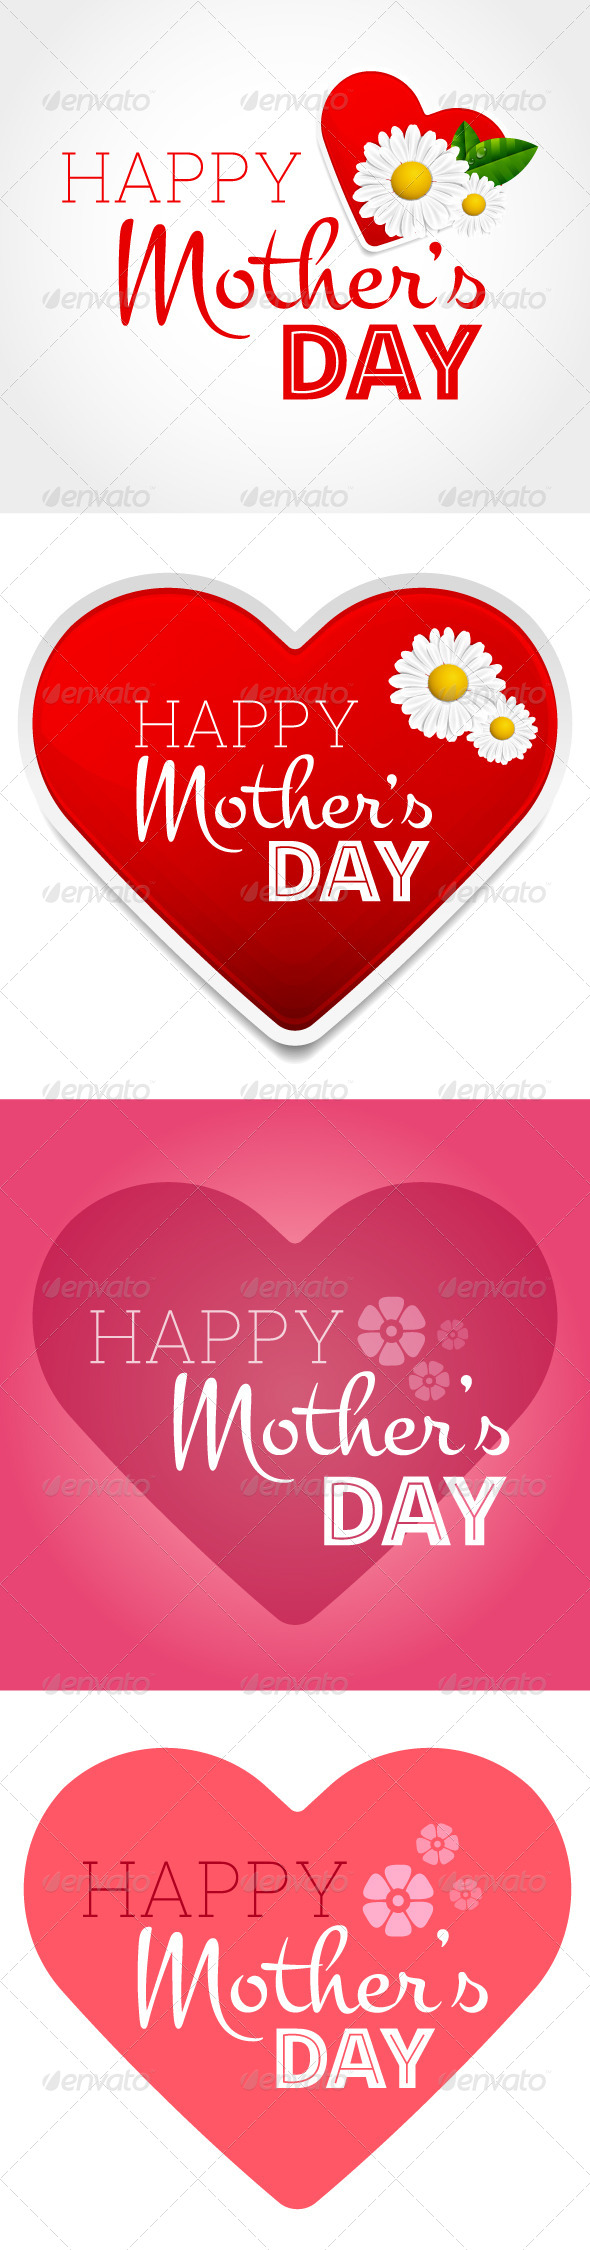 GraphicRiver Mothers Day Greeting Cards 7612438